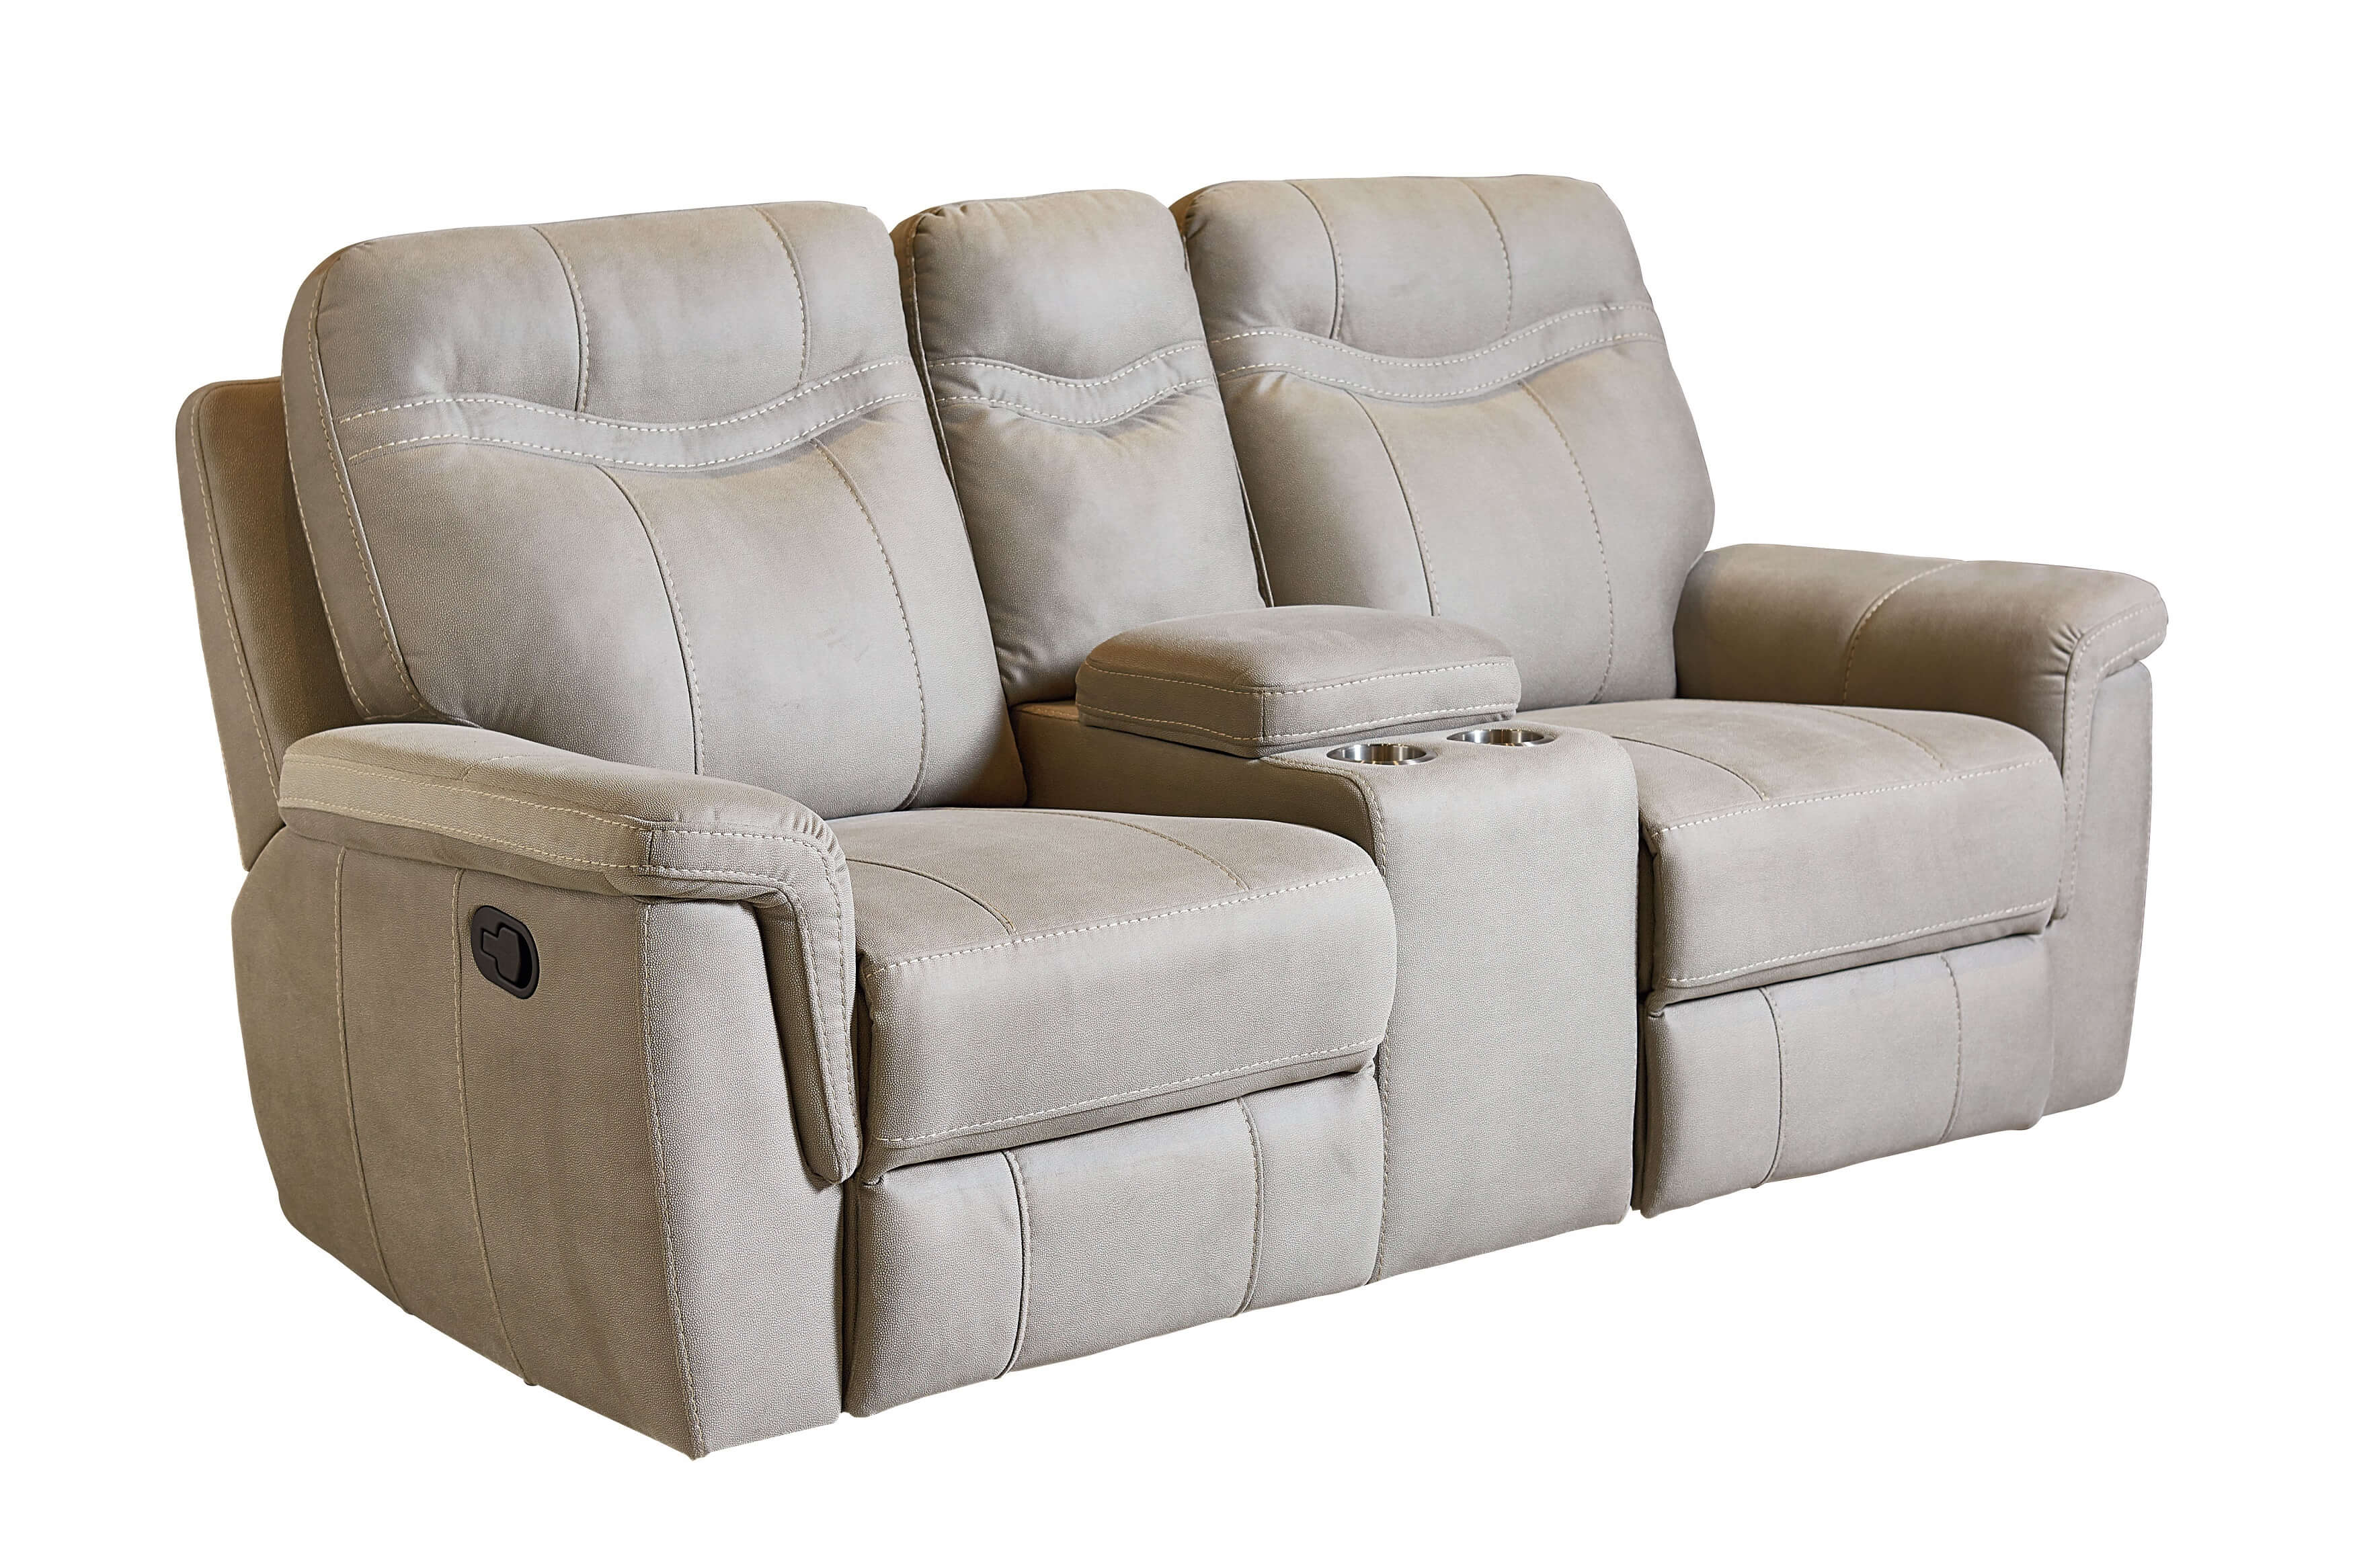 Boardwalk Stone Reclining Sofa and Loveseat by Standard Furniture